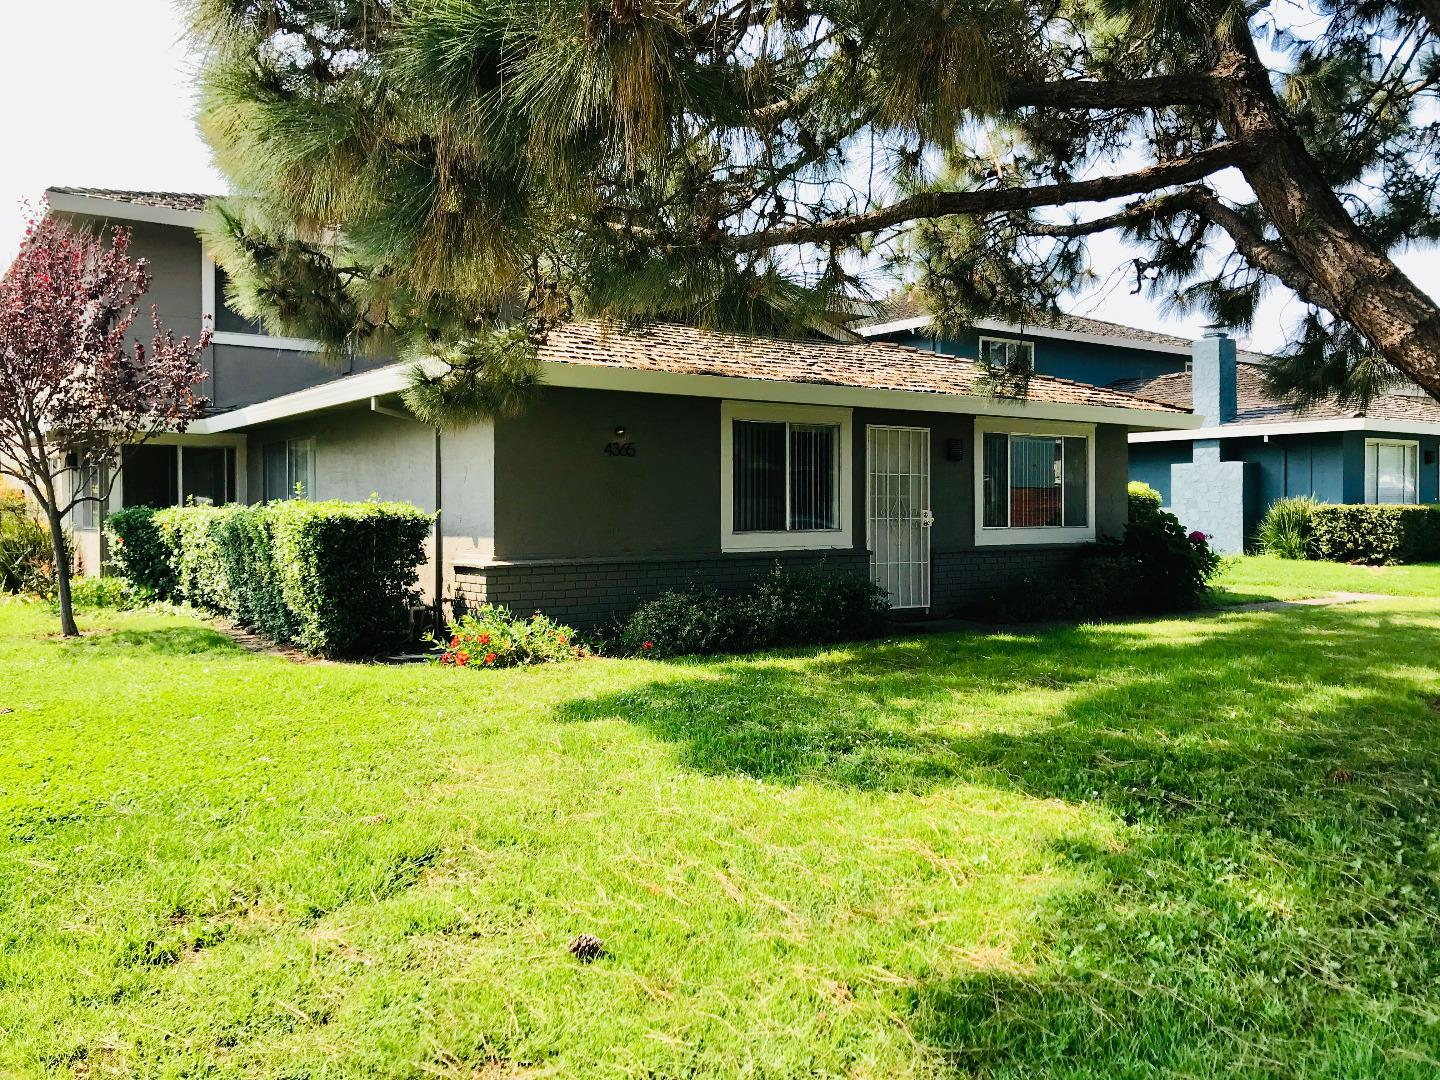 Ground floor, single level unit number one. Desireable Capitola Shores. Community pool and covered parking. Close to Jade Street Park, Capitola Village, Pleasure Point, beaches and shopping. Great opportunity for investor or first time home buyer.